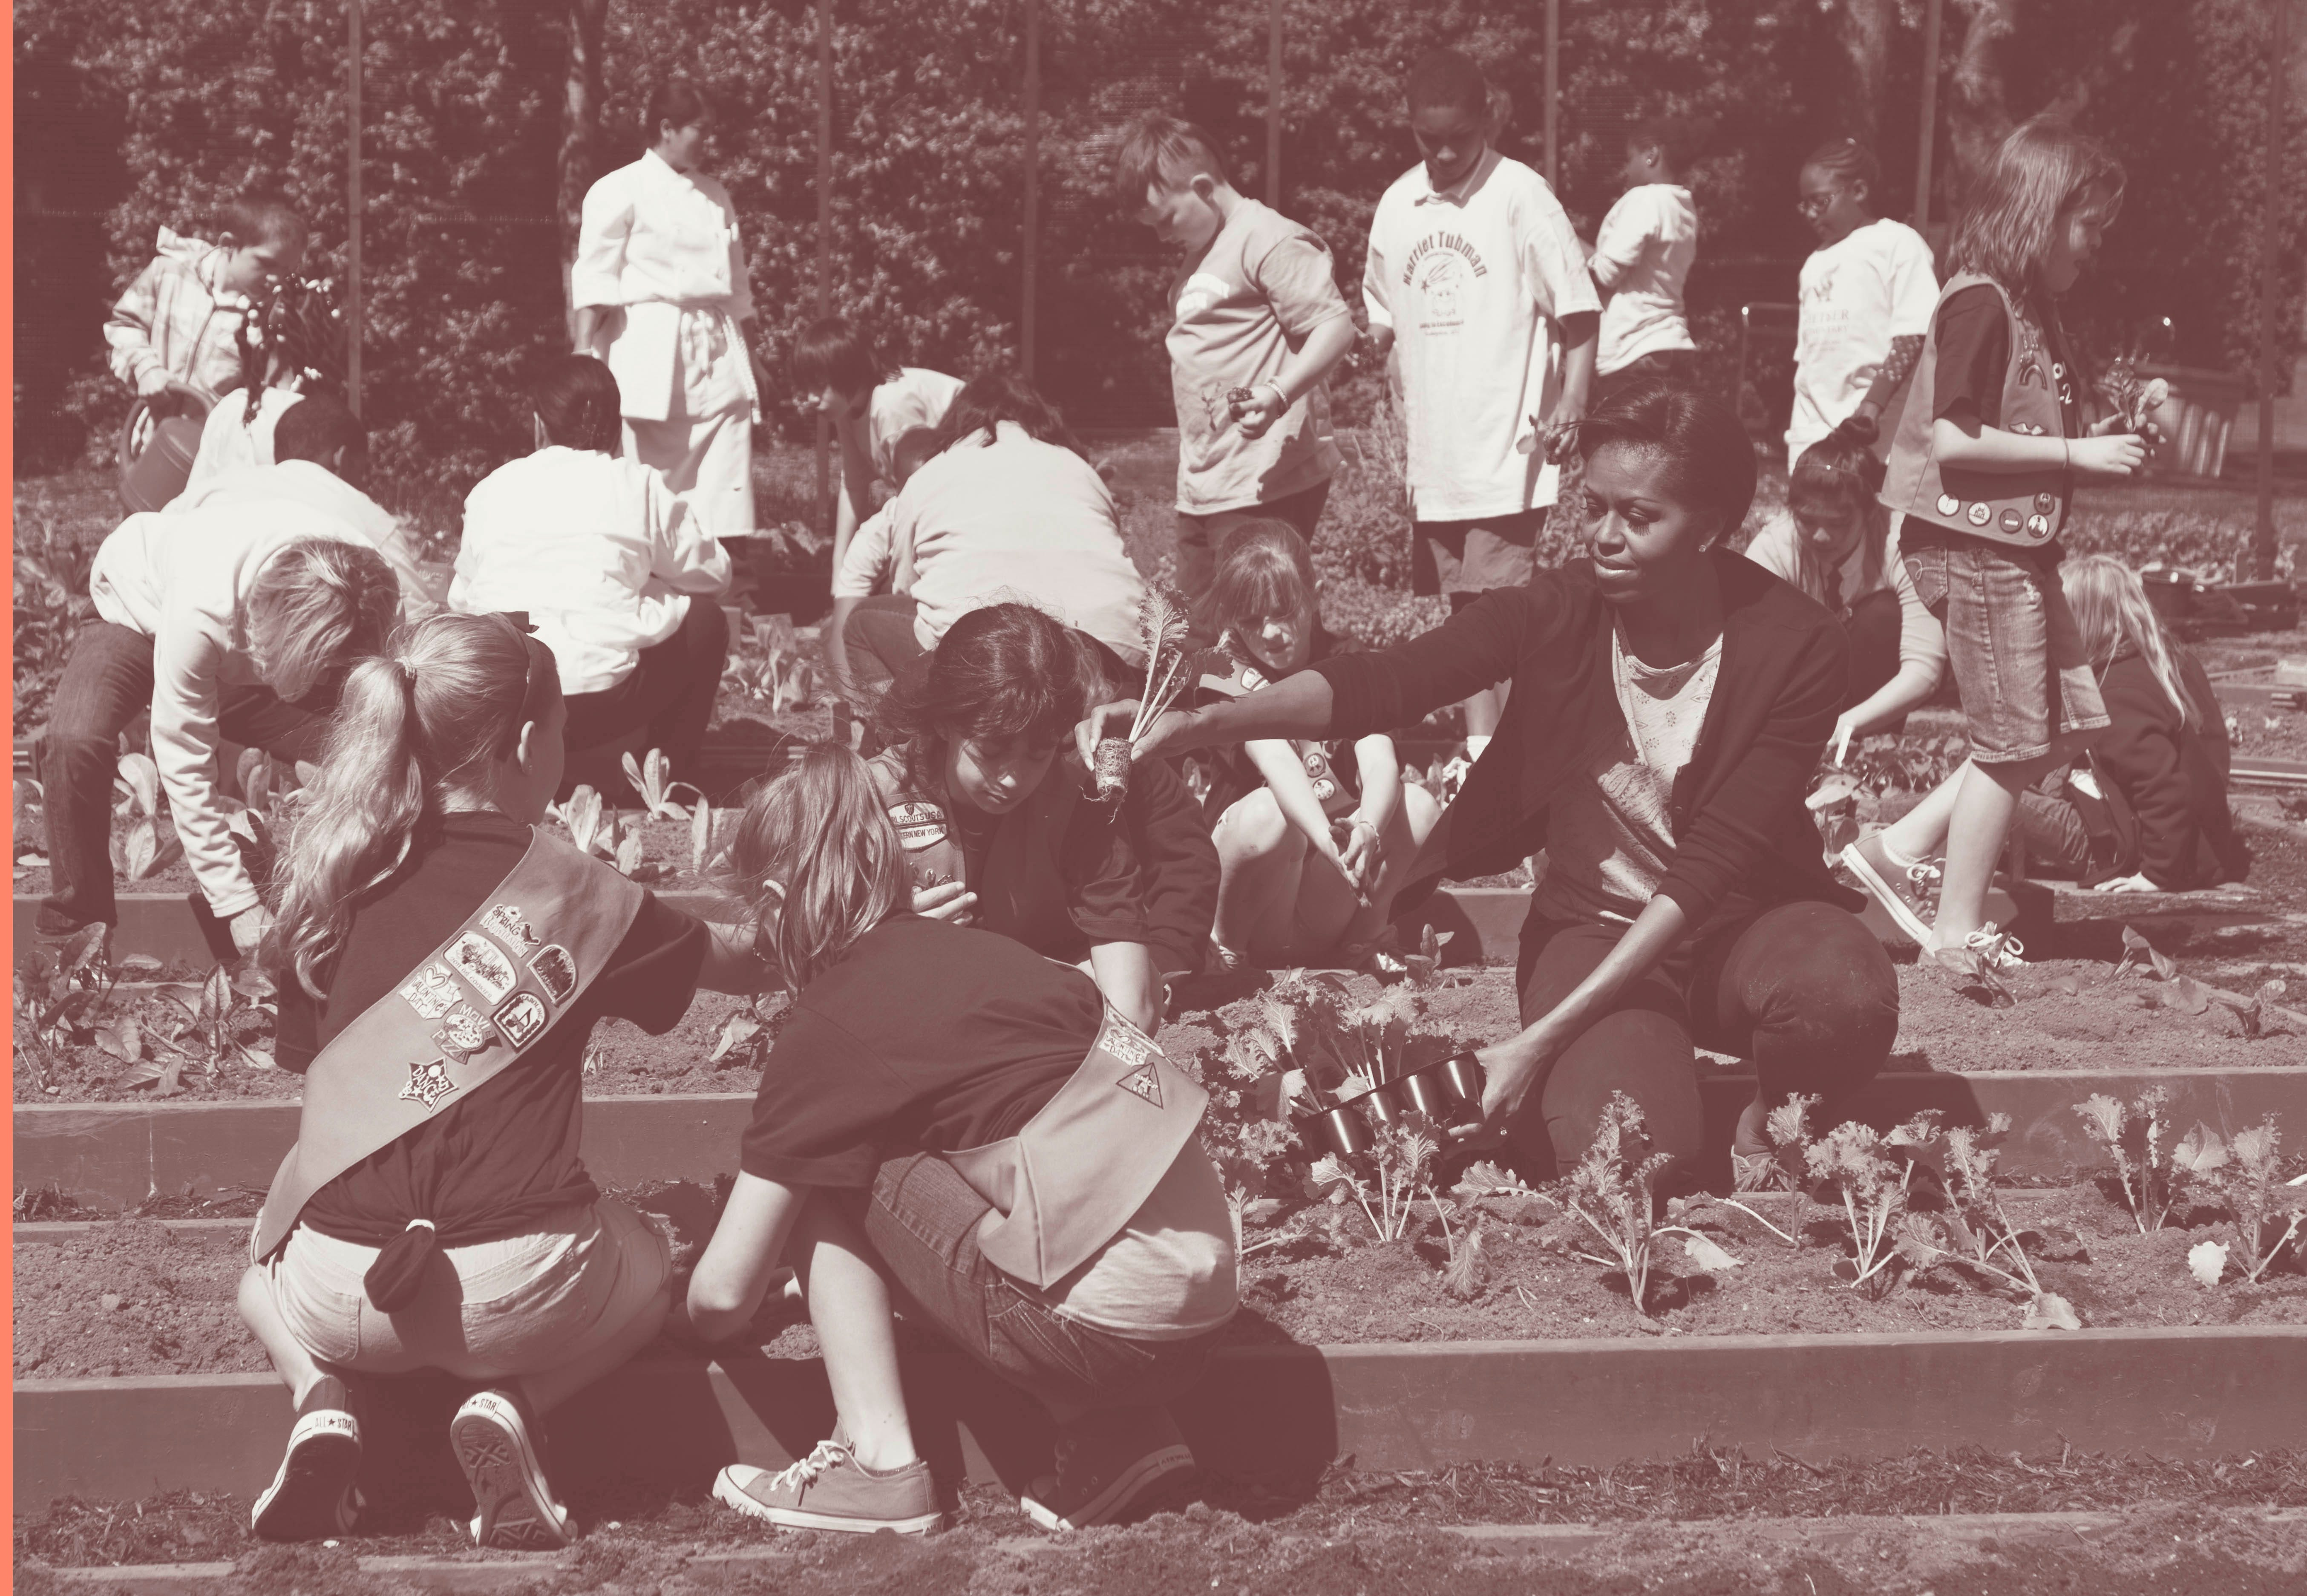 In 2012, first lady Michelle Obama plants mustard seedlings with Girl Scouts at the White House kitchen garden.